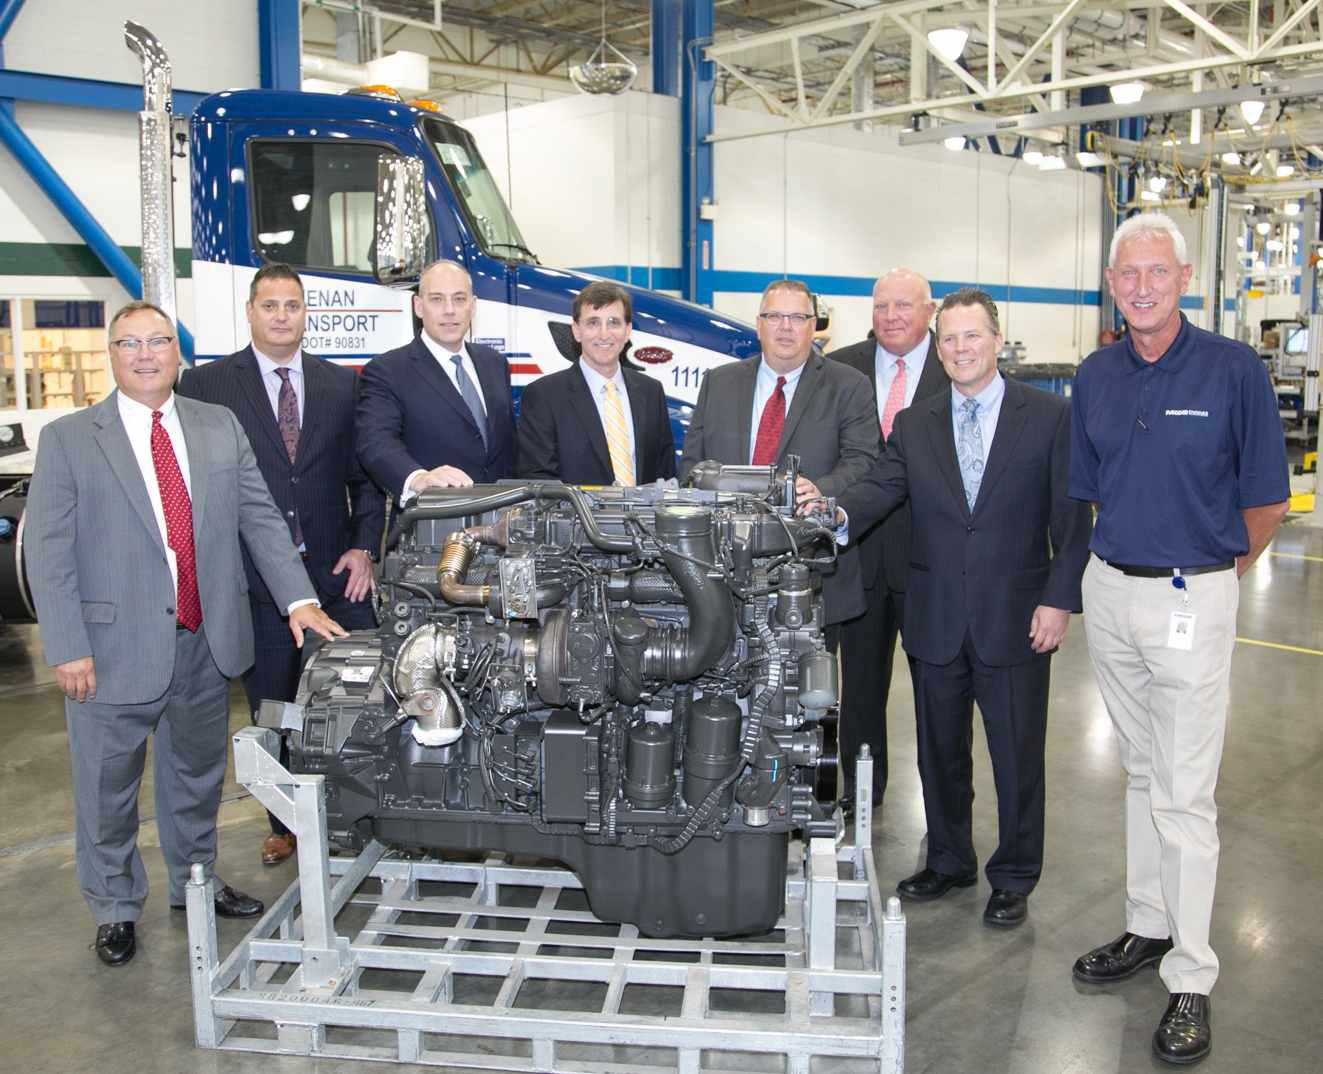 Representatives from AMG Peterbilt of Columbus, Kenan Advantage Group, PACCAR Engines and Peterbilt Motors Company celebrated the production of the 100,000th PACCAR MX-13 engine at the manufacturing facility in Columbus, Miss.